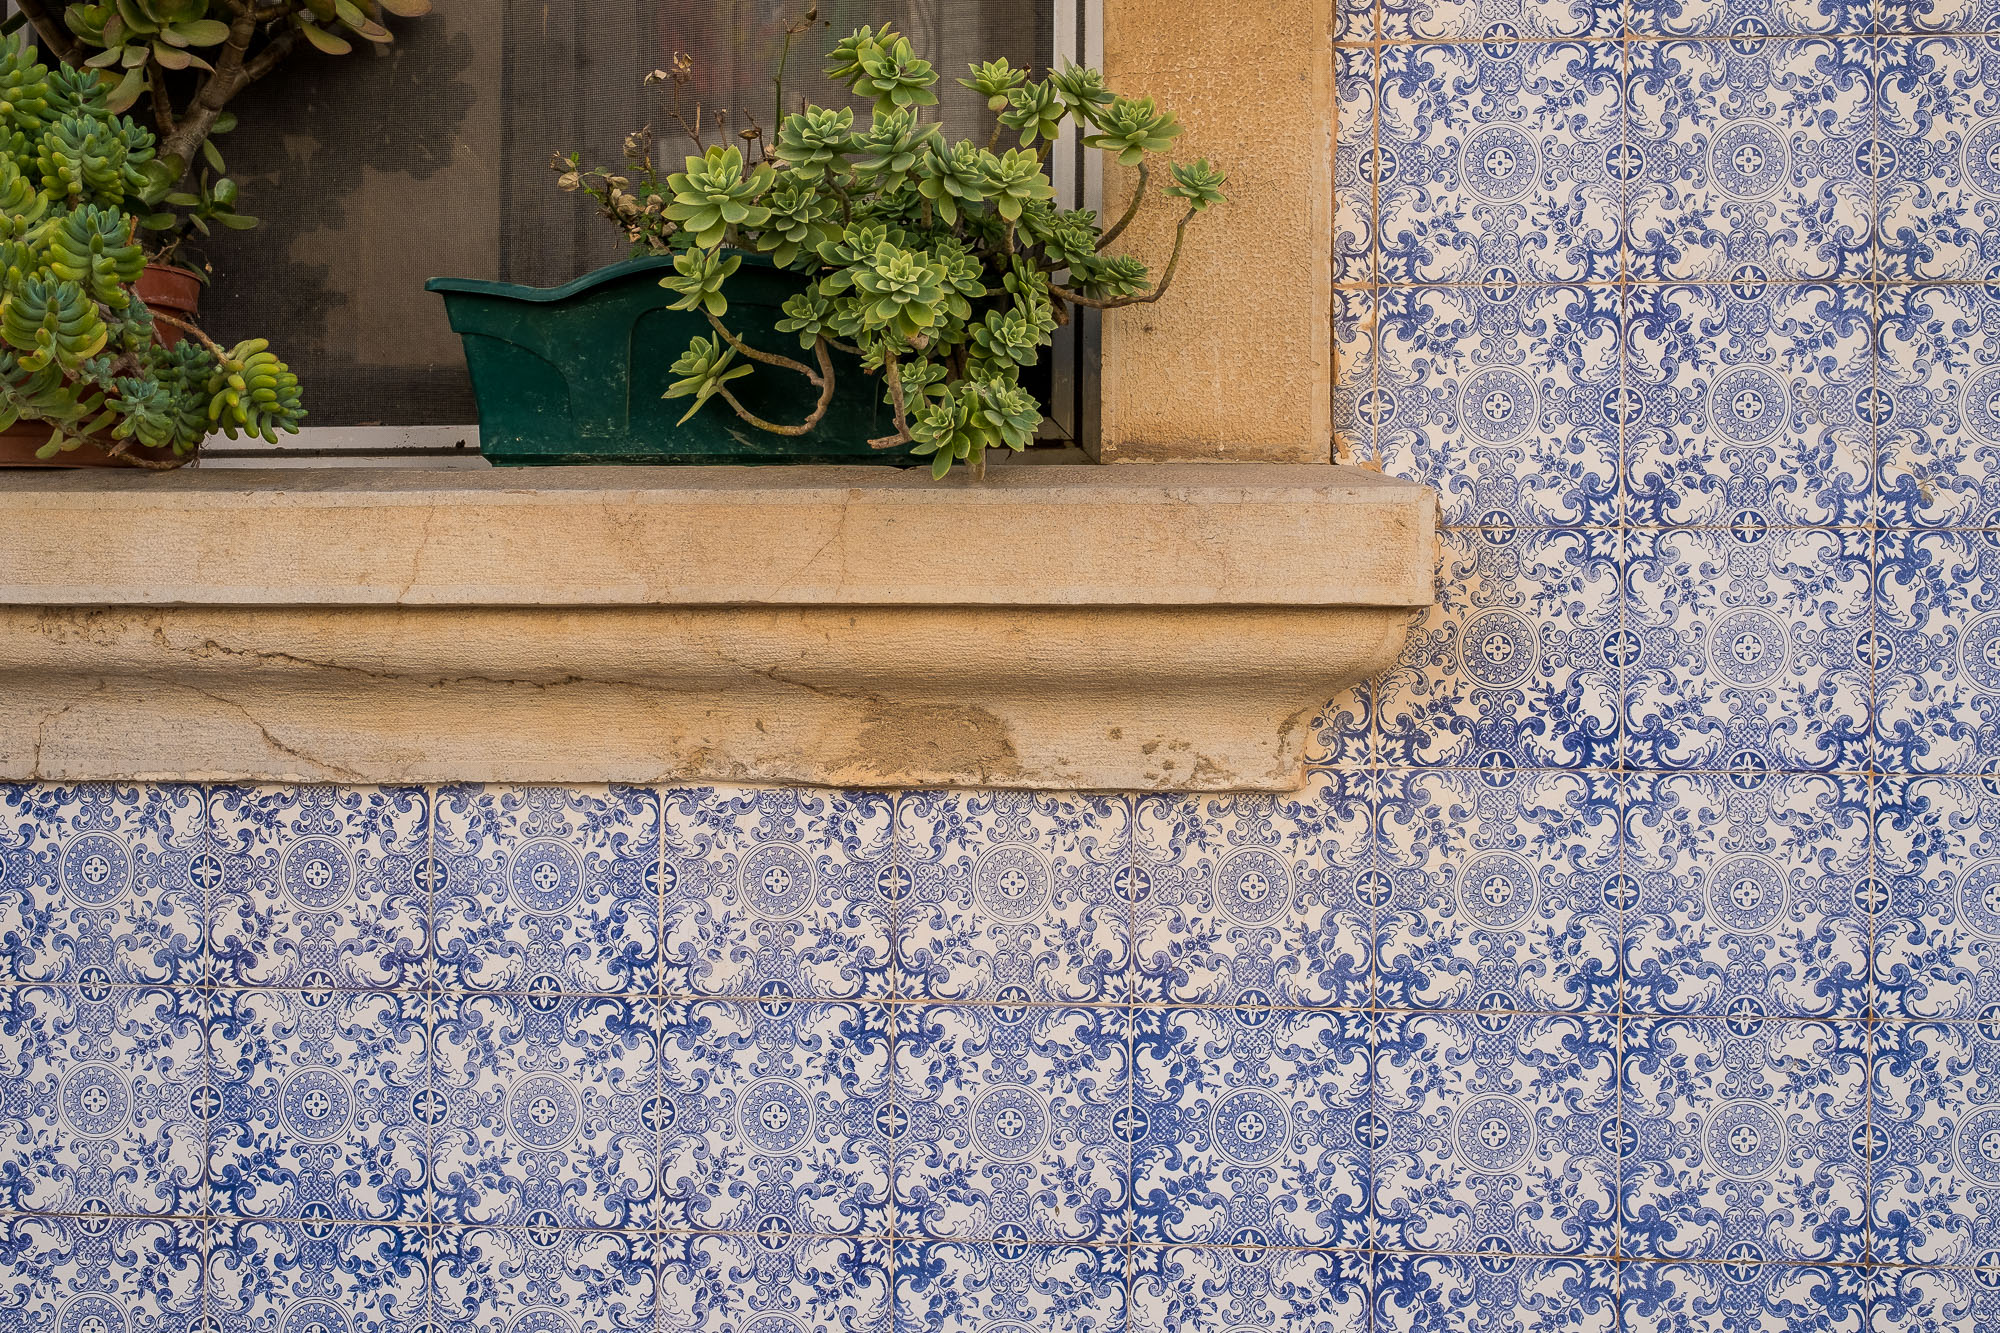 color photography inspiration, color in photography, examples of color in photography, photography of color, photography colours | Photo Blue tiles in Tavira, Portugal | Copyright Karin van Mierlo, Photography Playground